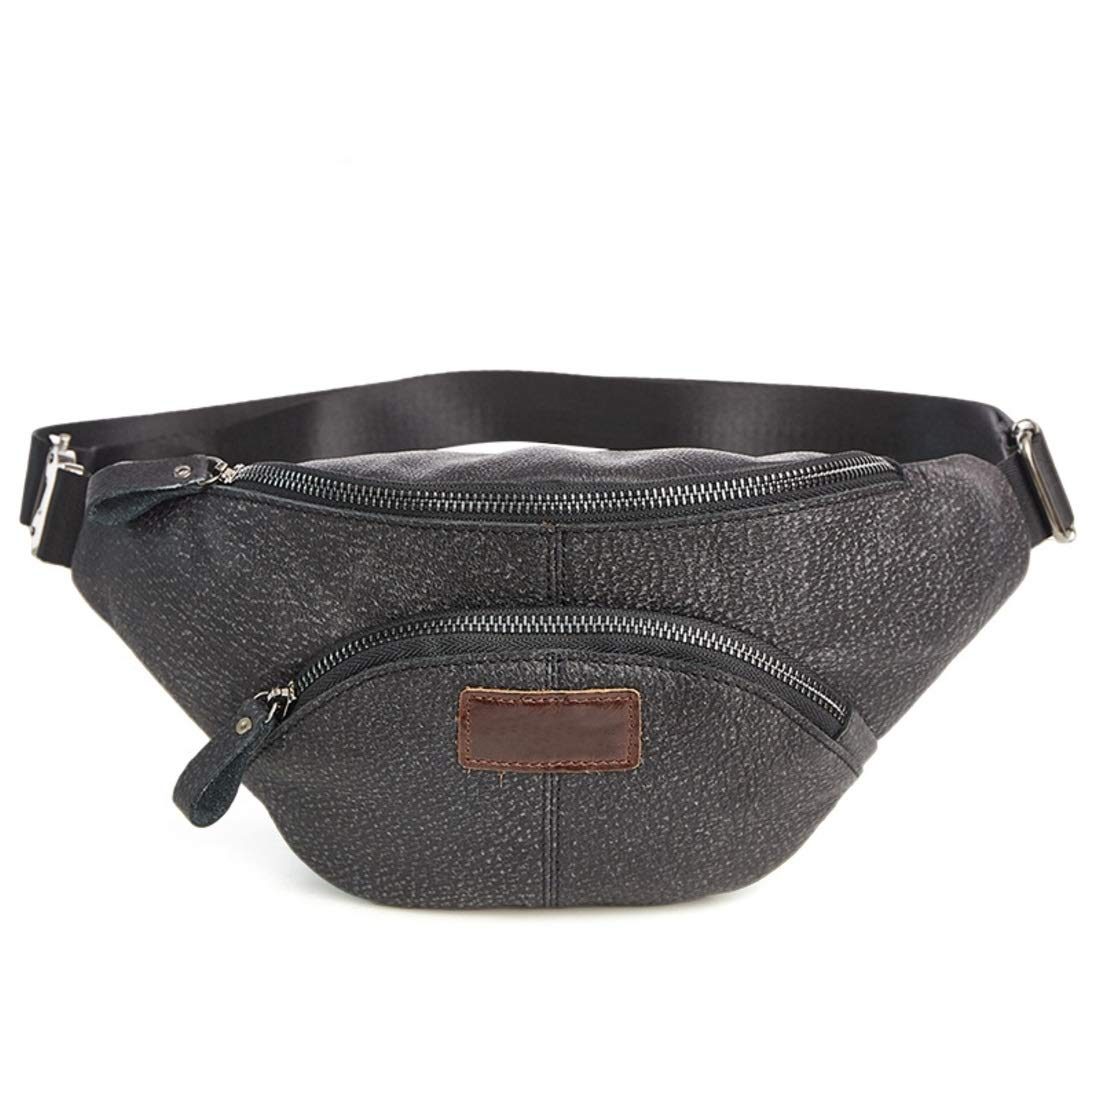 Color : Rown Souliyan Leather Waist Bag Bum Bag Fanny Pack Travel Waist Pack for Leisure Holiday Sports